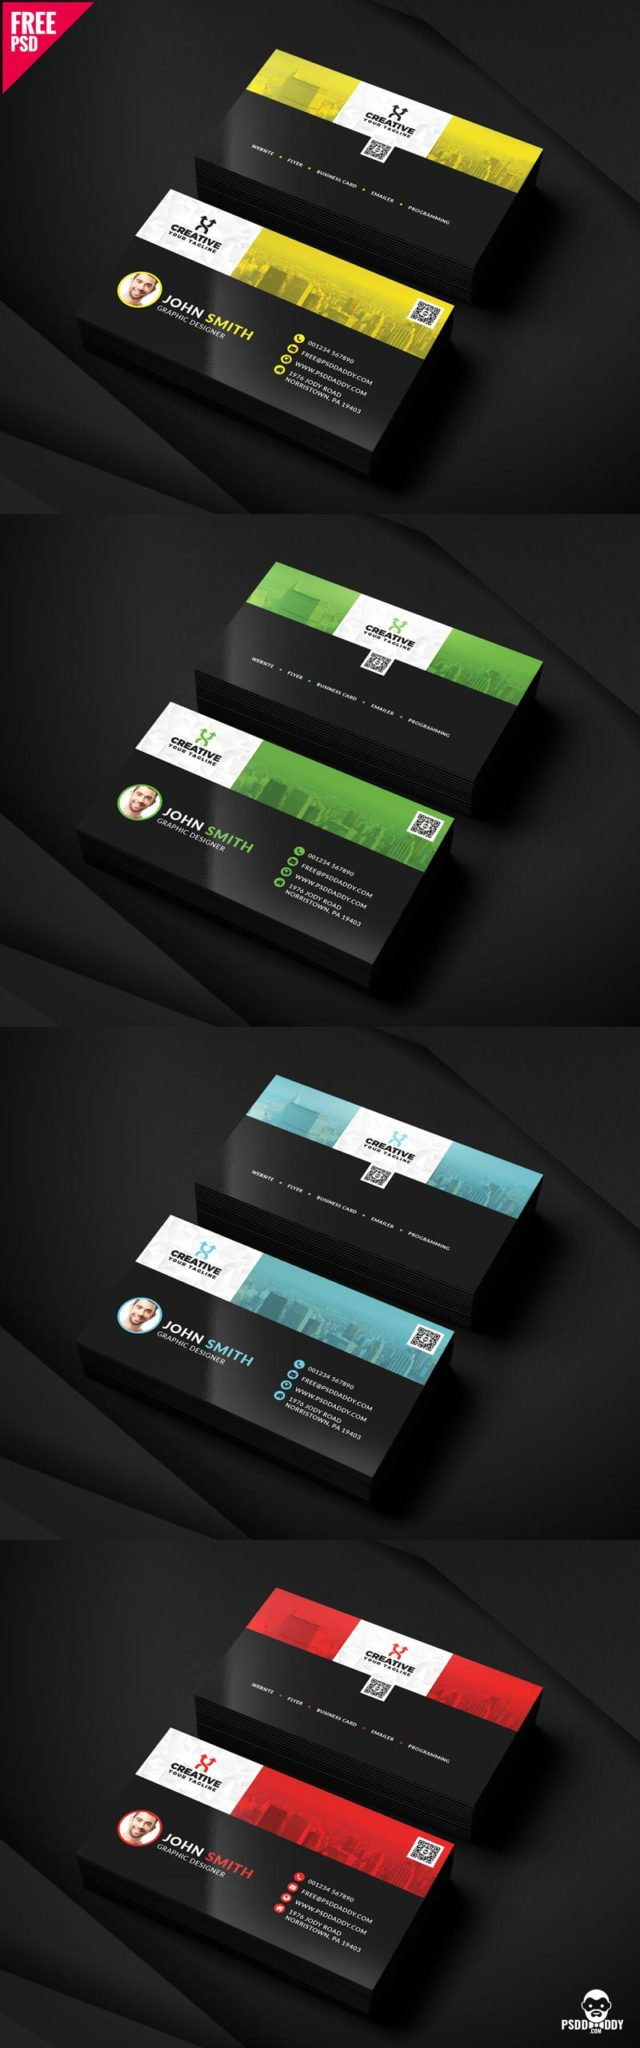 business card design,  business card design templates,  business card dimensions,  business card holder,  business card maker,  business card organizer,  business card photoshop template,  business card printing,  business card size,  business card template,  business card template free,  business card template photoshop,  business card template psd,  business cards,  business cards for real estate,  business cards free templates,  business cards online,  business cards real estate,  cheap business cards,  corporate visiting card,  creative business cards,  creative visiting card,  custom business cards,  elegant business cards,  free business card templates,  free business cards,  free psd flyer,  modern business cards,  online printing,  photography business cards,  photoshop business card template,  print,  print business cards,  psd card,  real estate business cards,  real estate cards,  real estate visiting card design,  template business card,  template for business cards,  tri fold brochure template,  visiting card,  visiting card design free download,  visiting card design psd,  visiting card images,  visiting card psd,  visiting card psd free download,  visiting card template,  visiting card templates,  visiting cards templates,  psd daddy,  psd freebies,  free psd download,  creative psd download,  download psd,  psddaddy,  best visiting card,  business card design,  business card design free,  business card design ideas,  business card format,  business card maker,  business card printing,  business card size,  business card template,  business cards,  business cards free,  card design,  cheap business cards,  custom business cards,  digital business card,  fashion business cards,  free business card templates,  free business cards,  graphic design,  how to design a business card,  i card design,  logo design,  loyalty cards,  make your own business cards,  name card design,  premium business cards,  print business cards,  printable business cards,  transparent visiting card,  visiting card,  visiting card design,